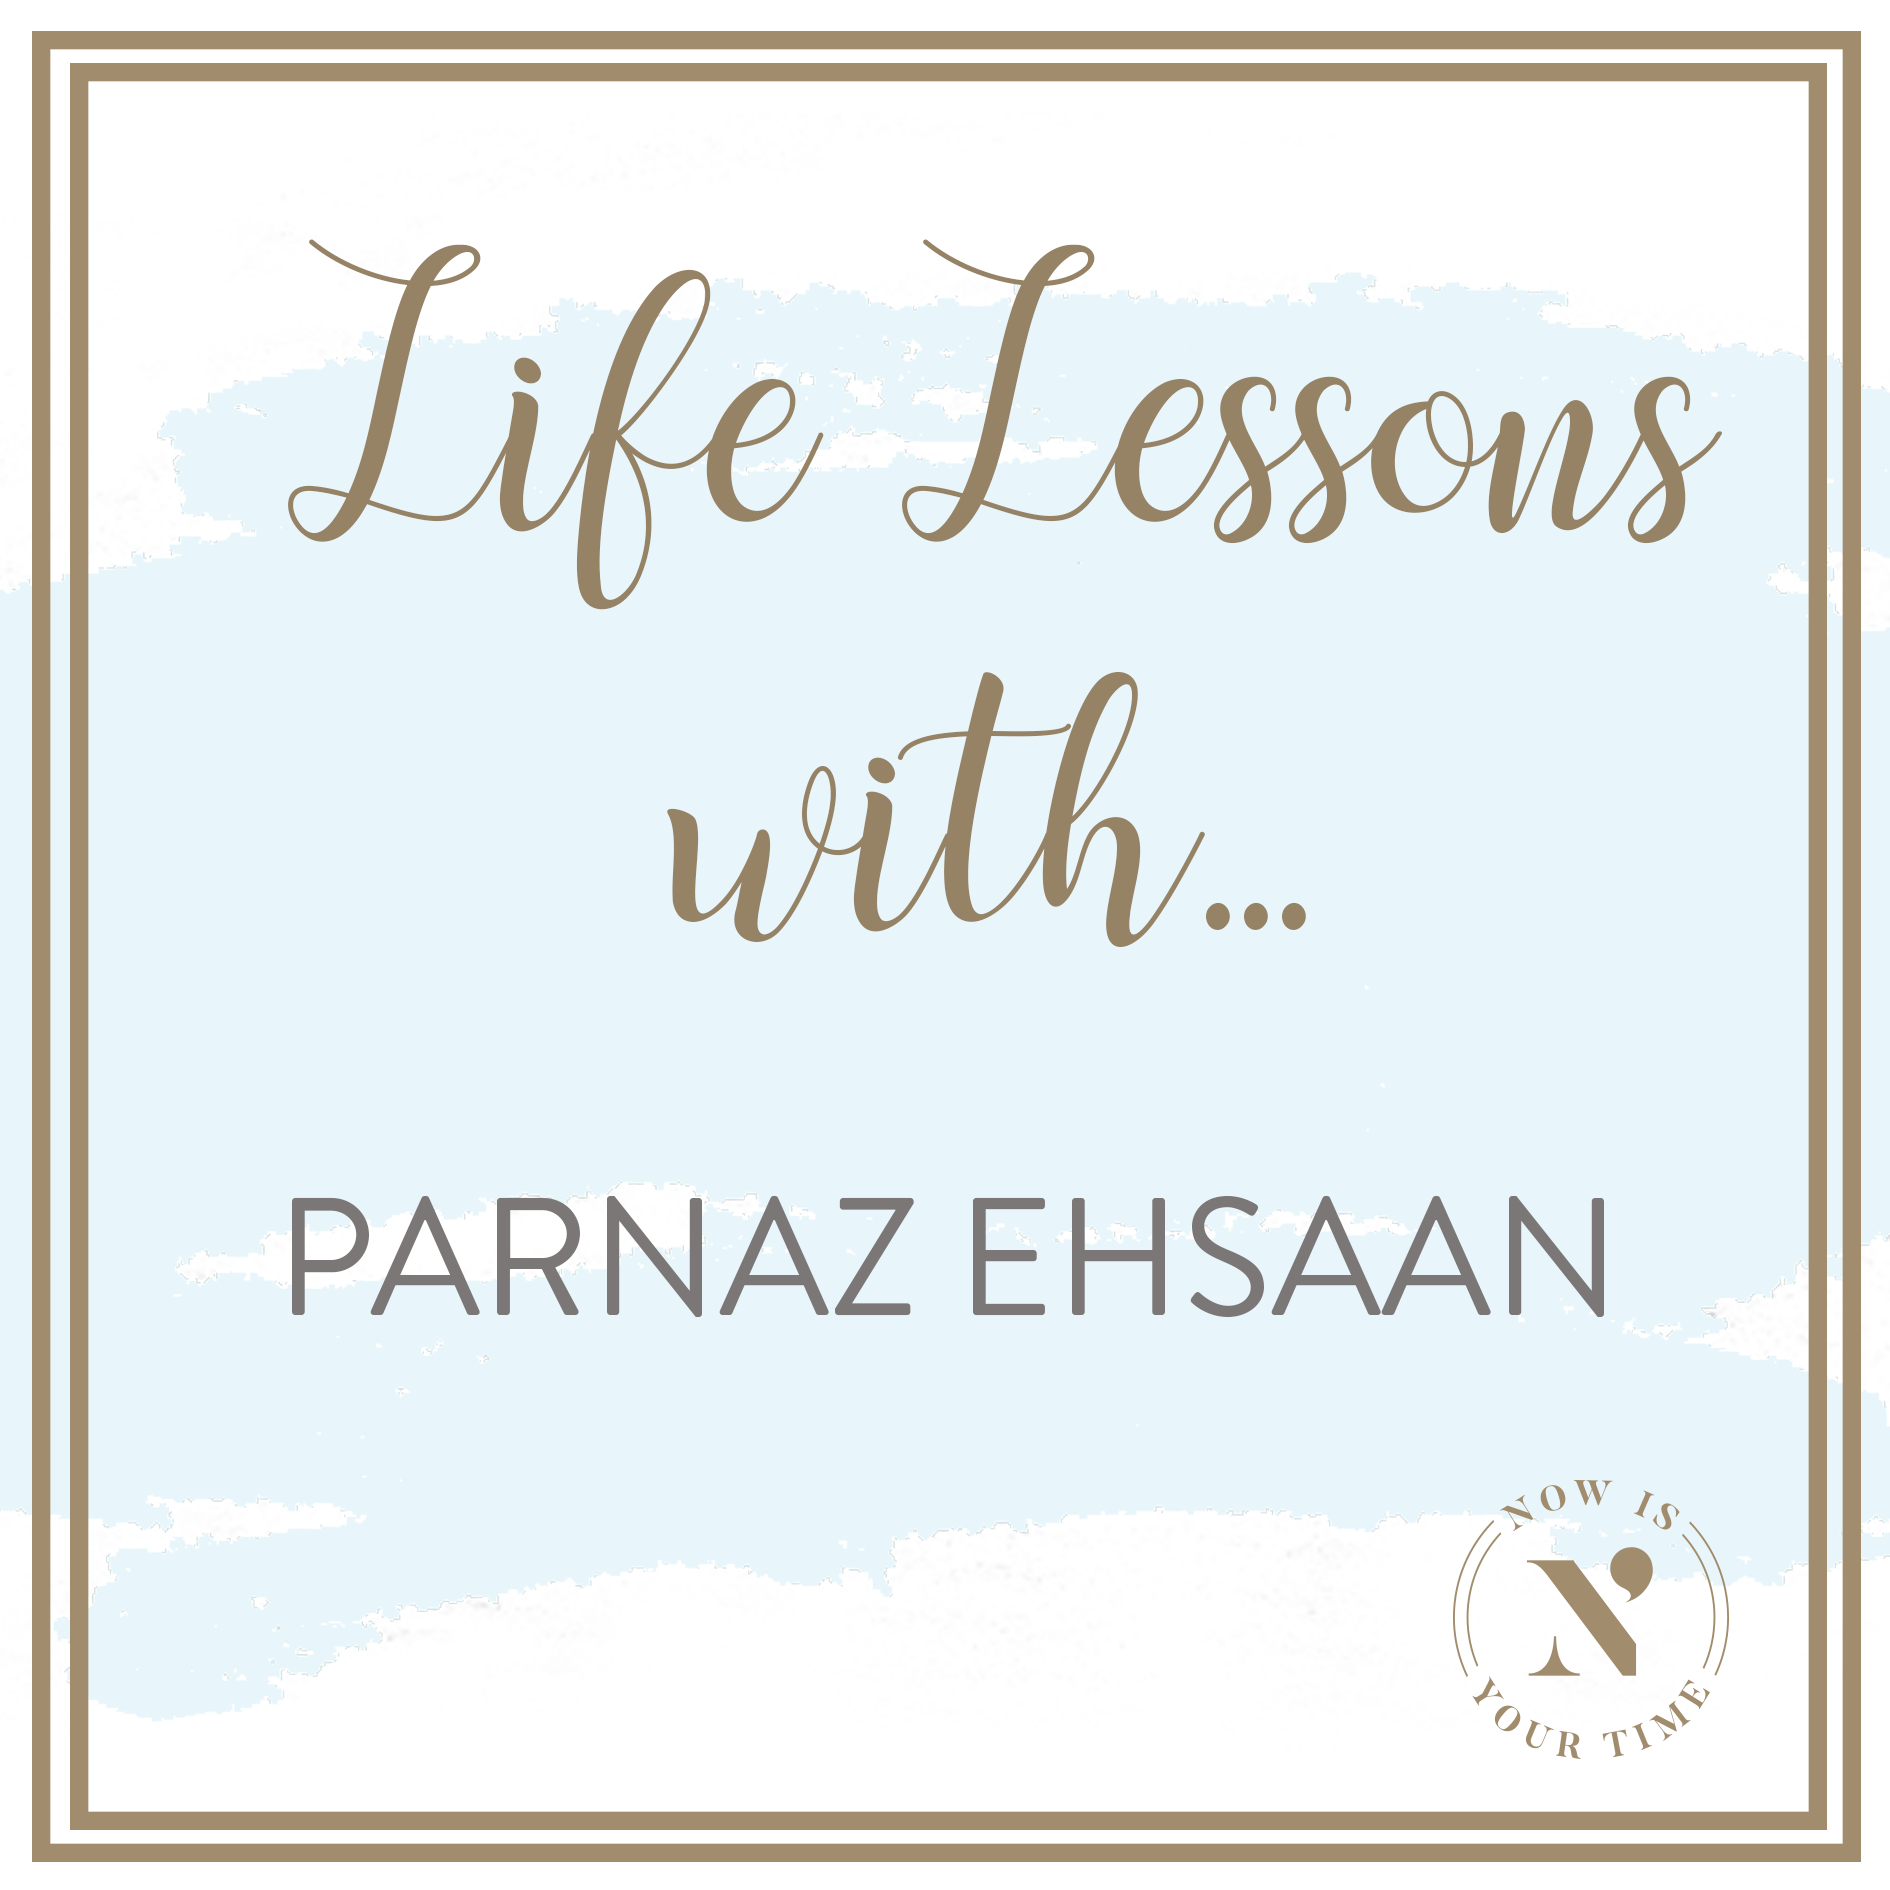 Life Lessons with podcast artwork - Parnaz Ehsaan.png